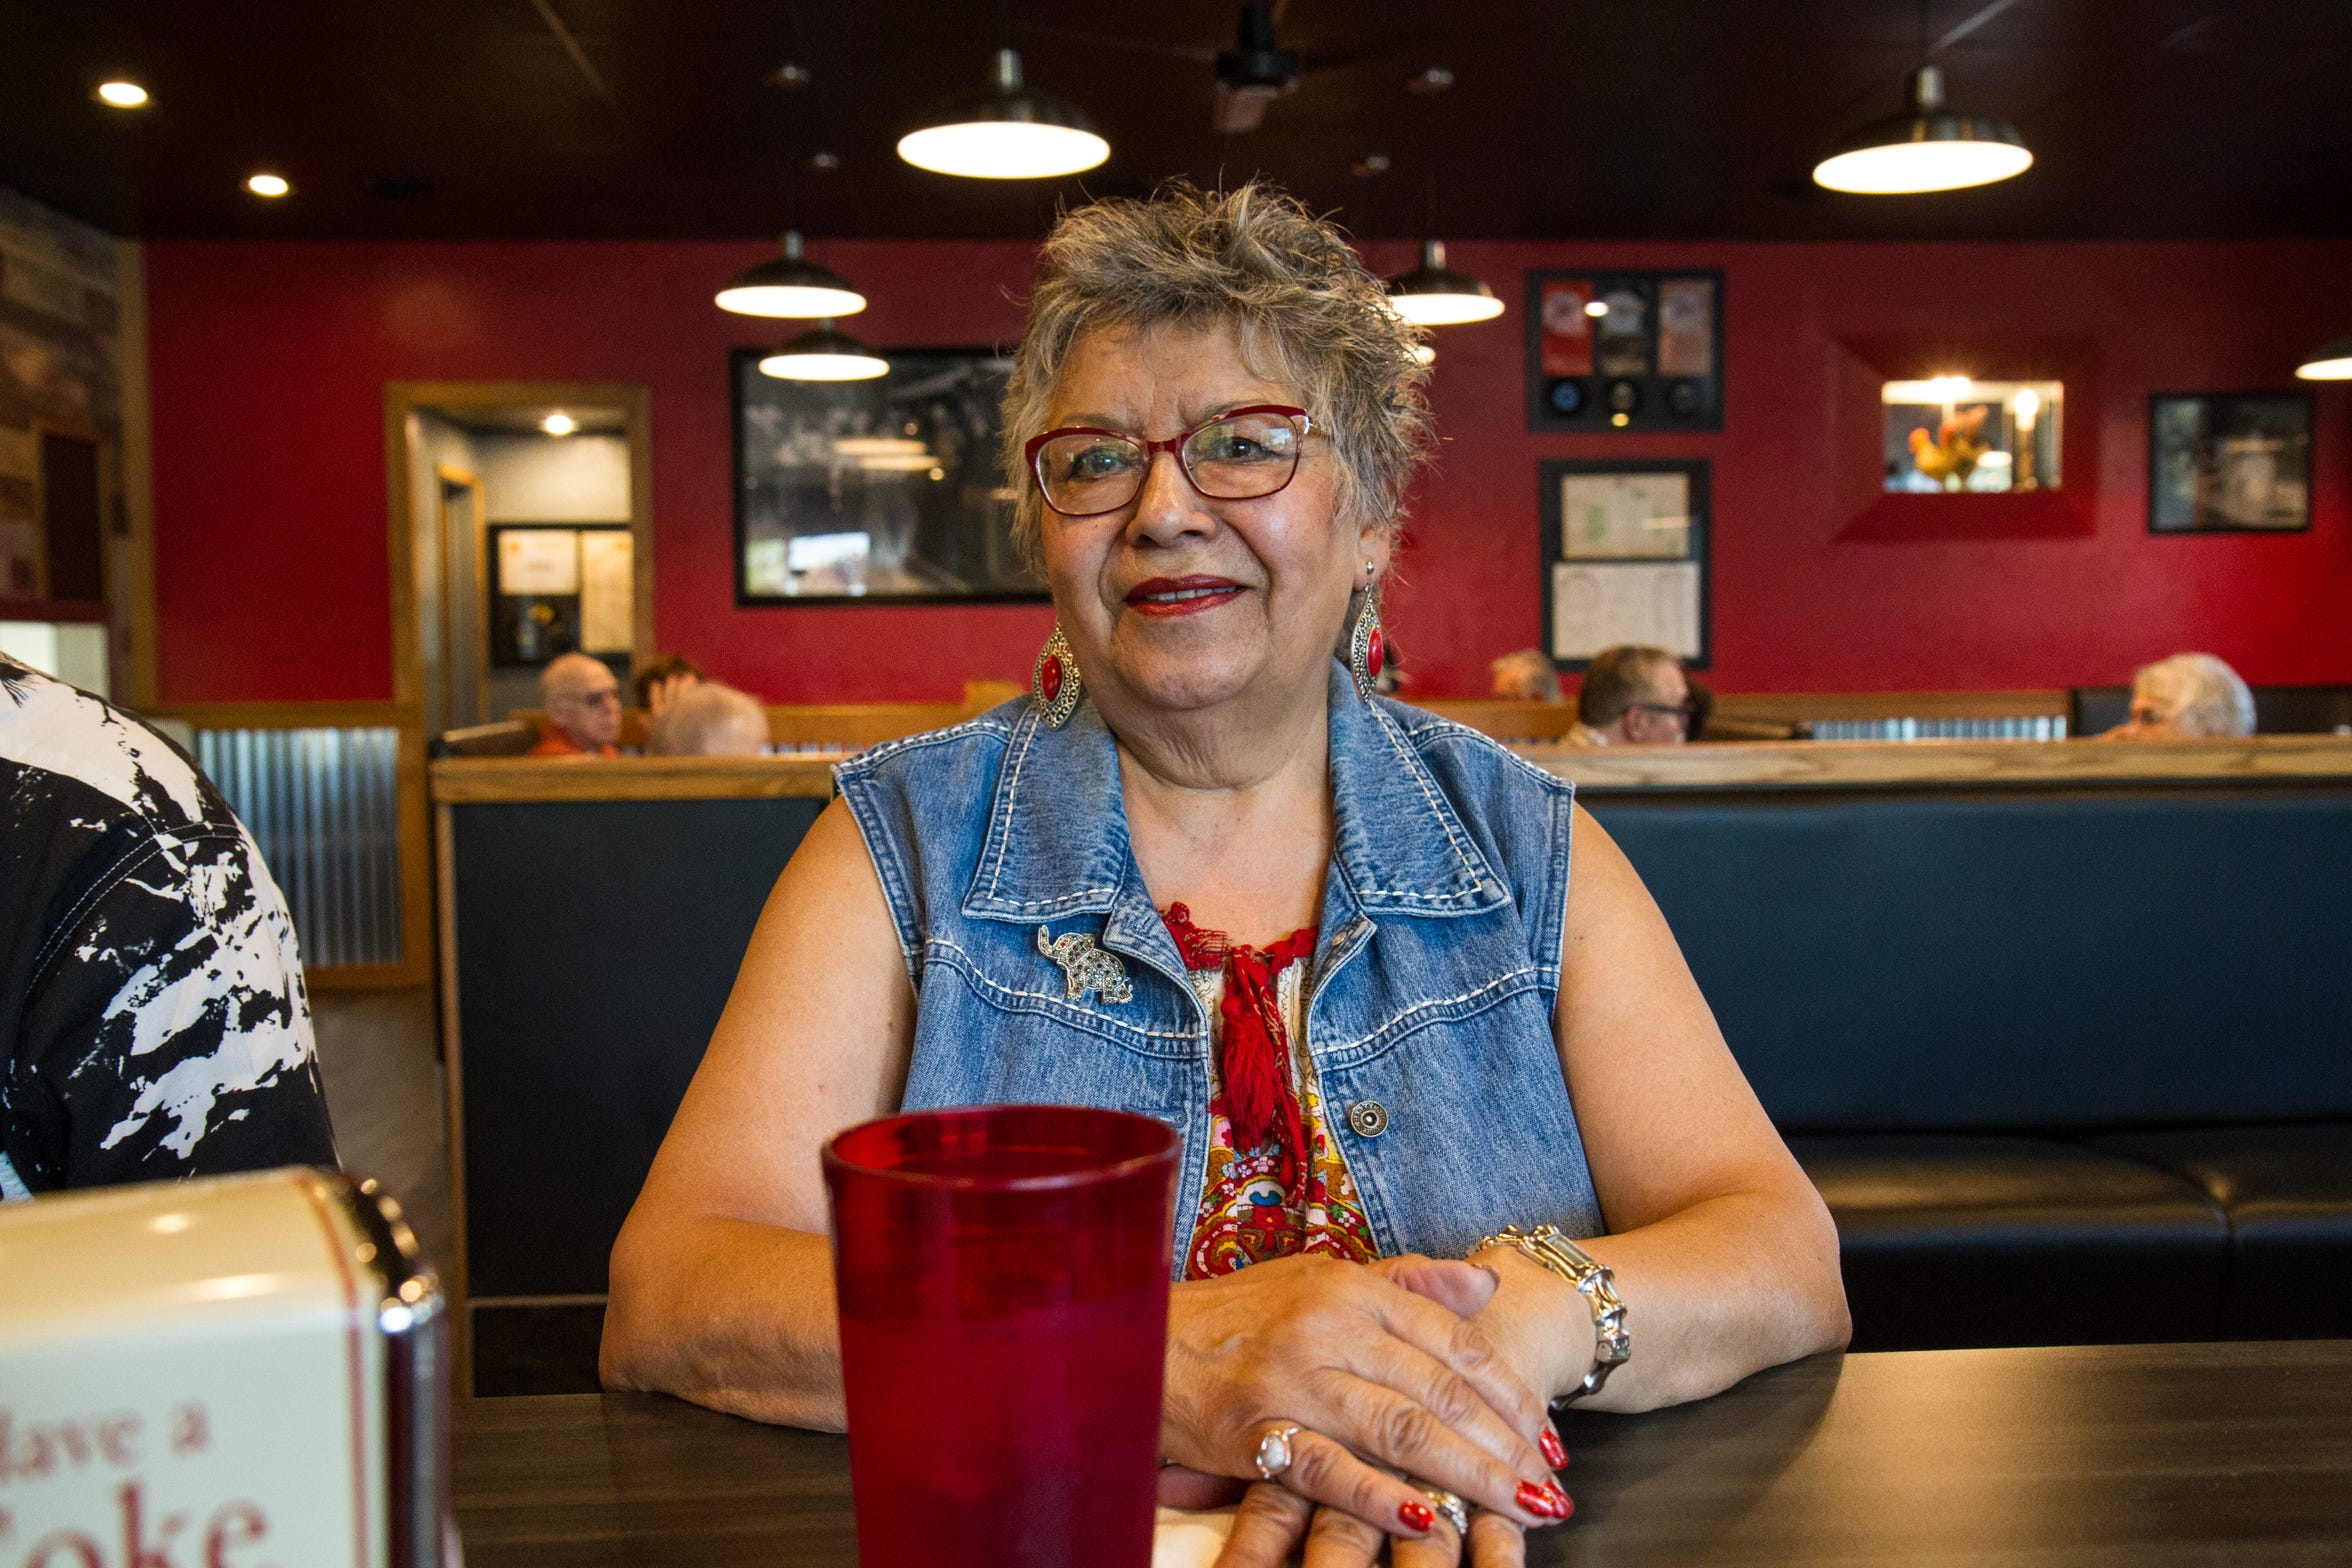 Francey Armstrong said she's always loved the food at Tracy's.